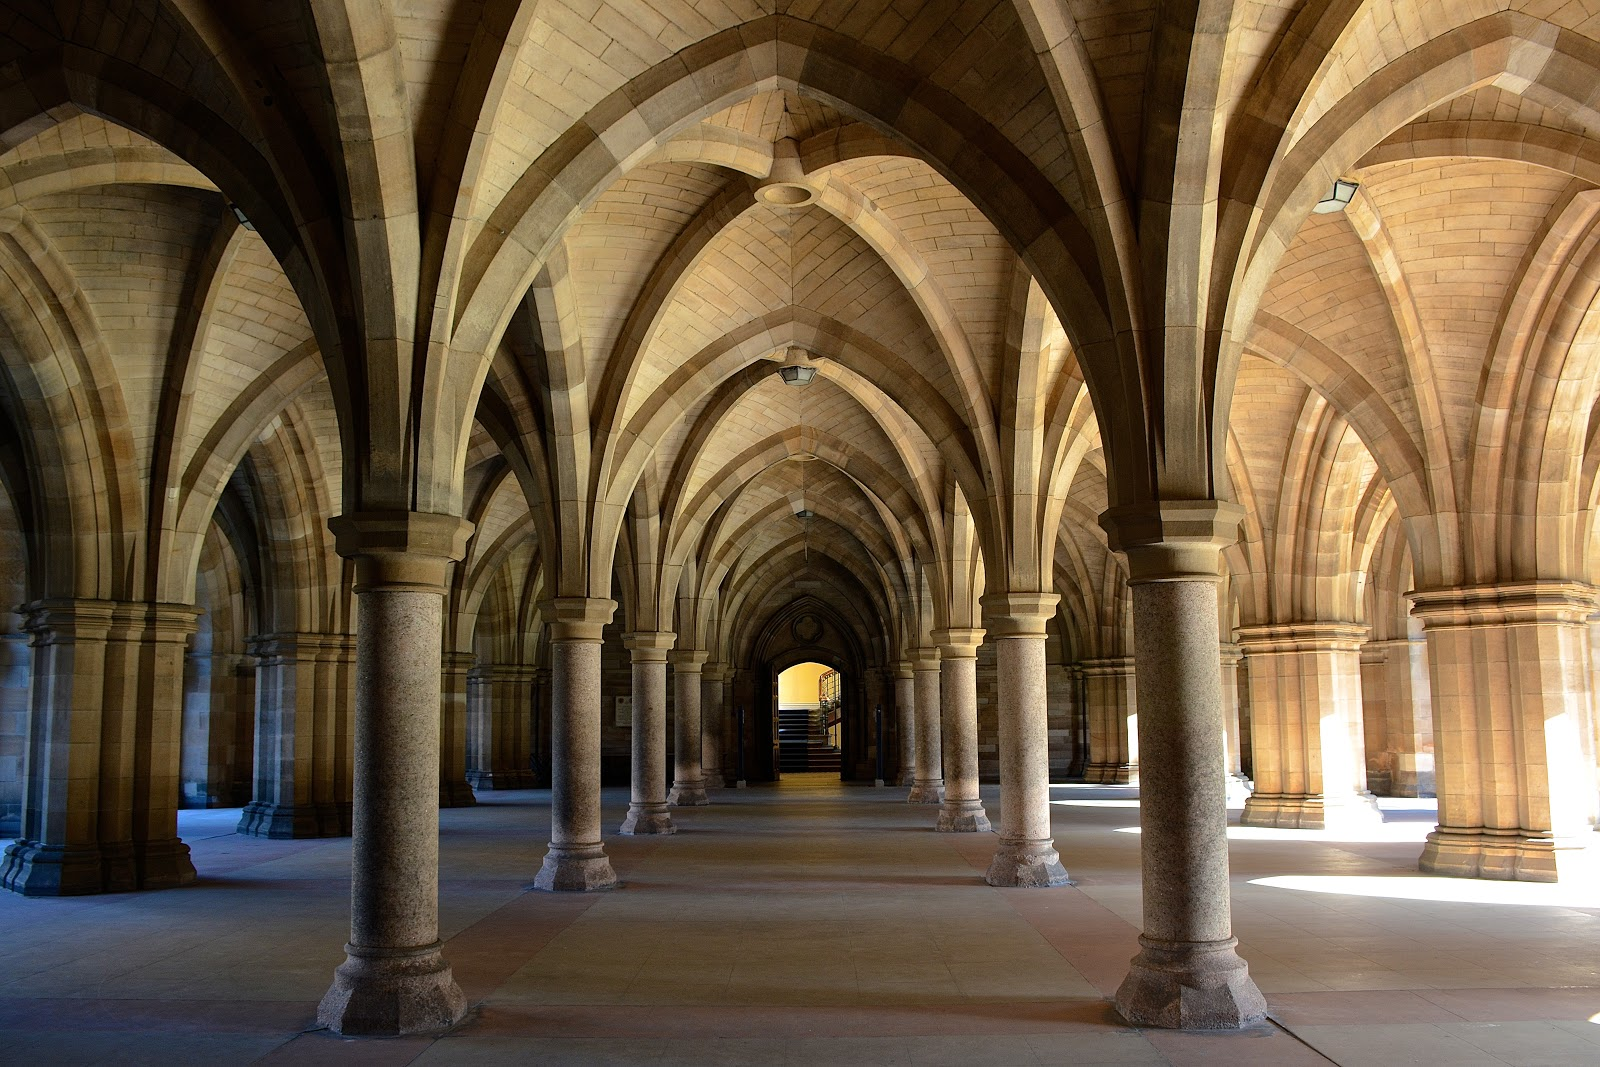 Cloisters on the University of Glasgow campus